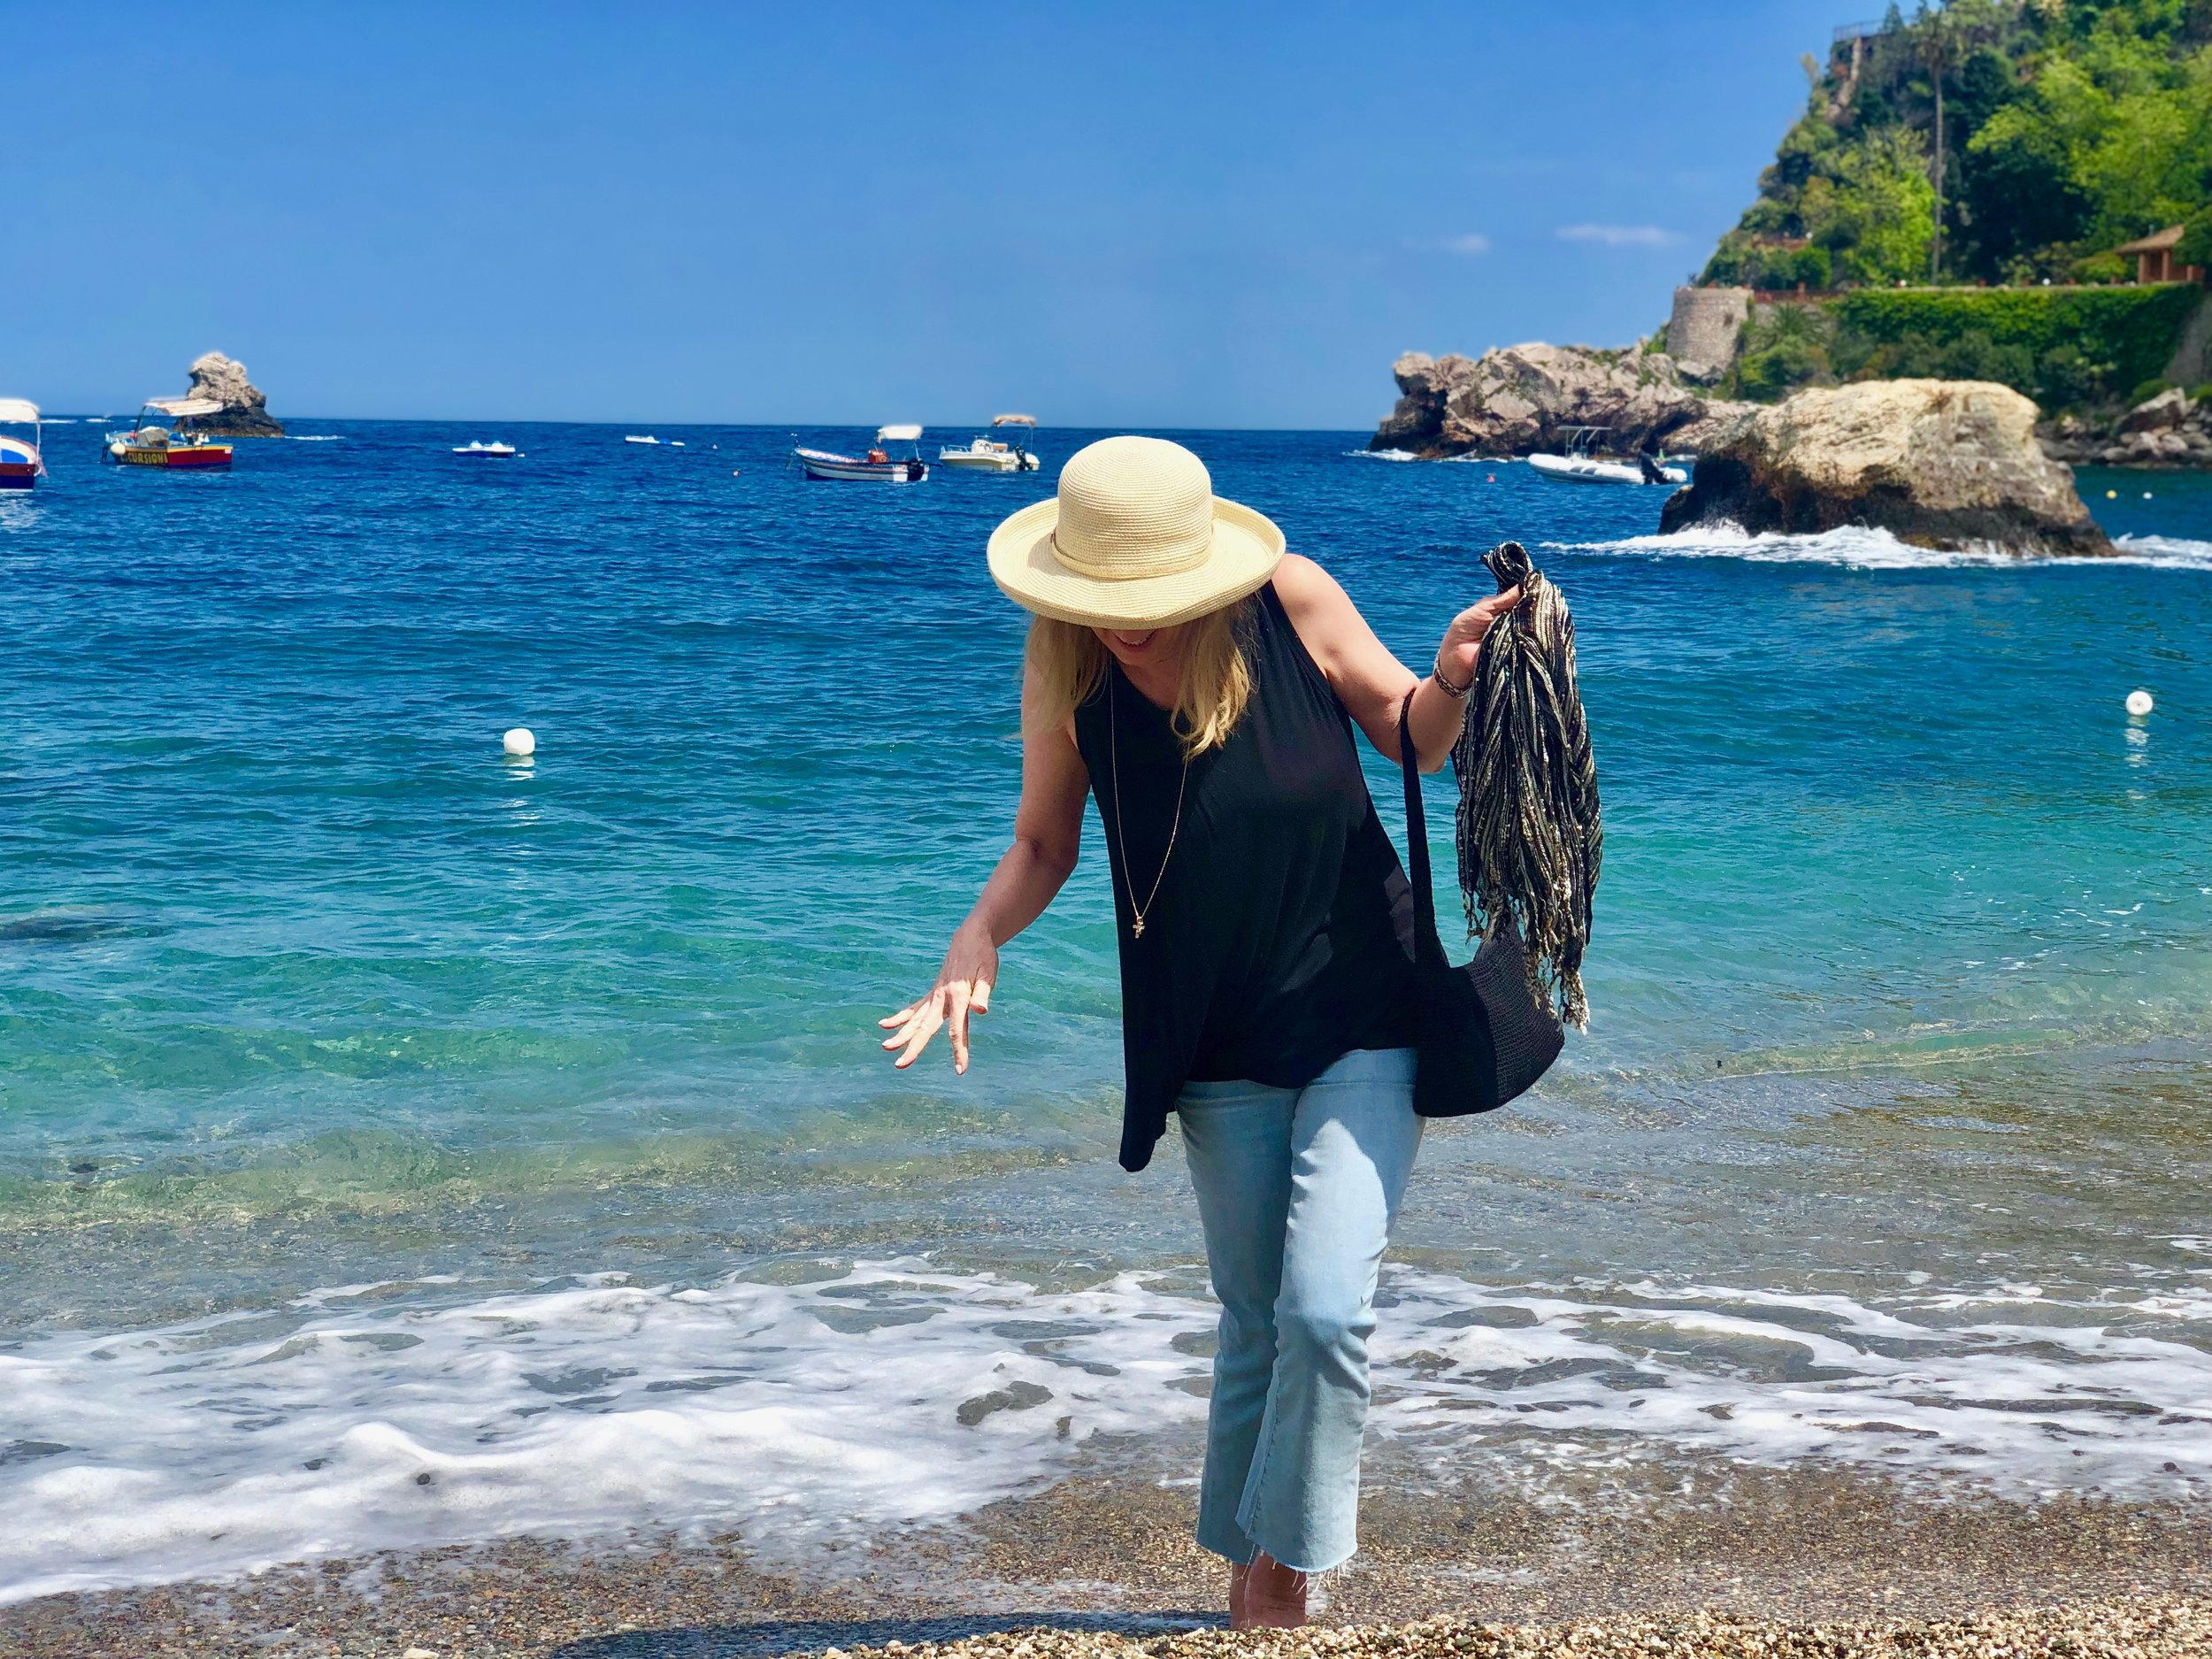 My pair of Paige cropped flare high waist jeans are comfortable, trendy AND appropriate for any age. Here, seen getting the hems wet in the Mediterranean Sea in Taormina, Sicily, Italy this May. The little bit of stretch makes for ingesting lots of wine, pasta, pizza and still travel comfortably.